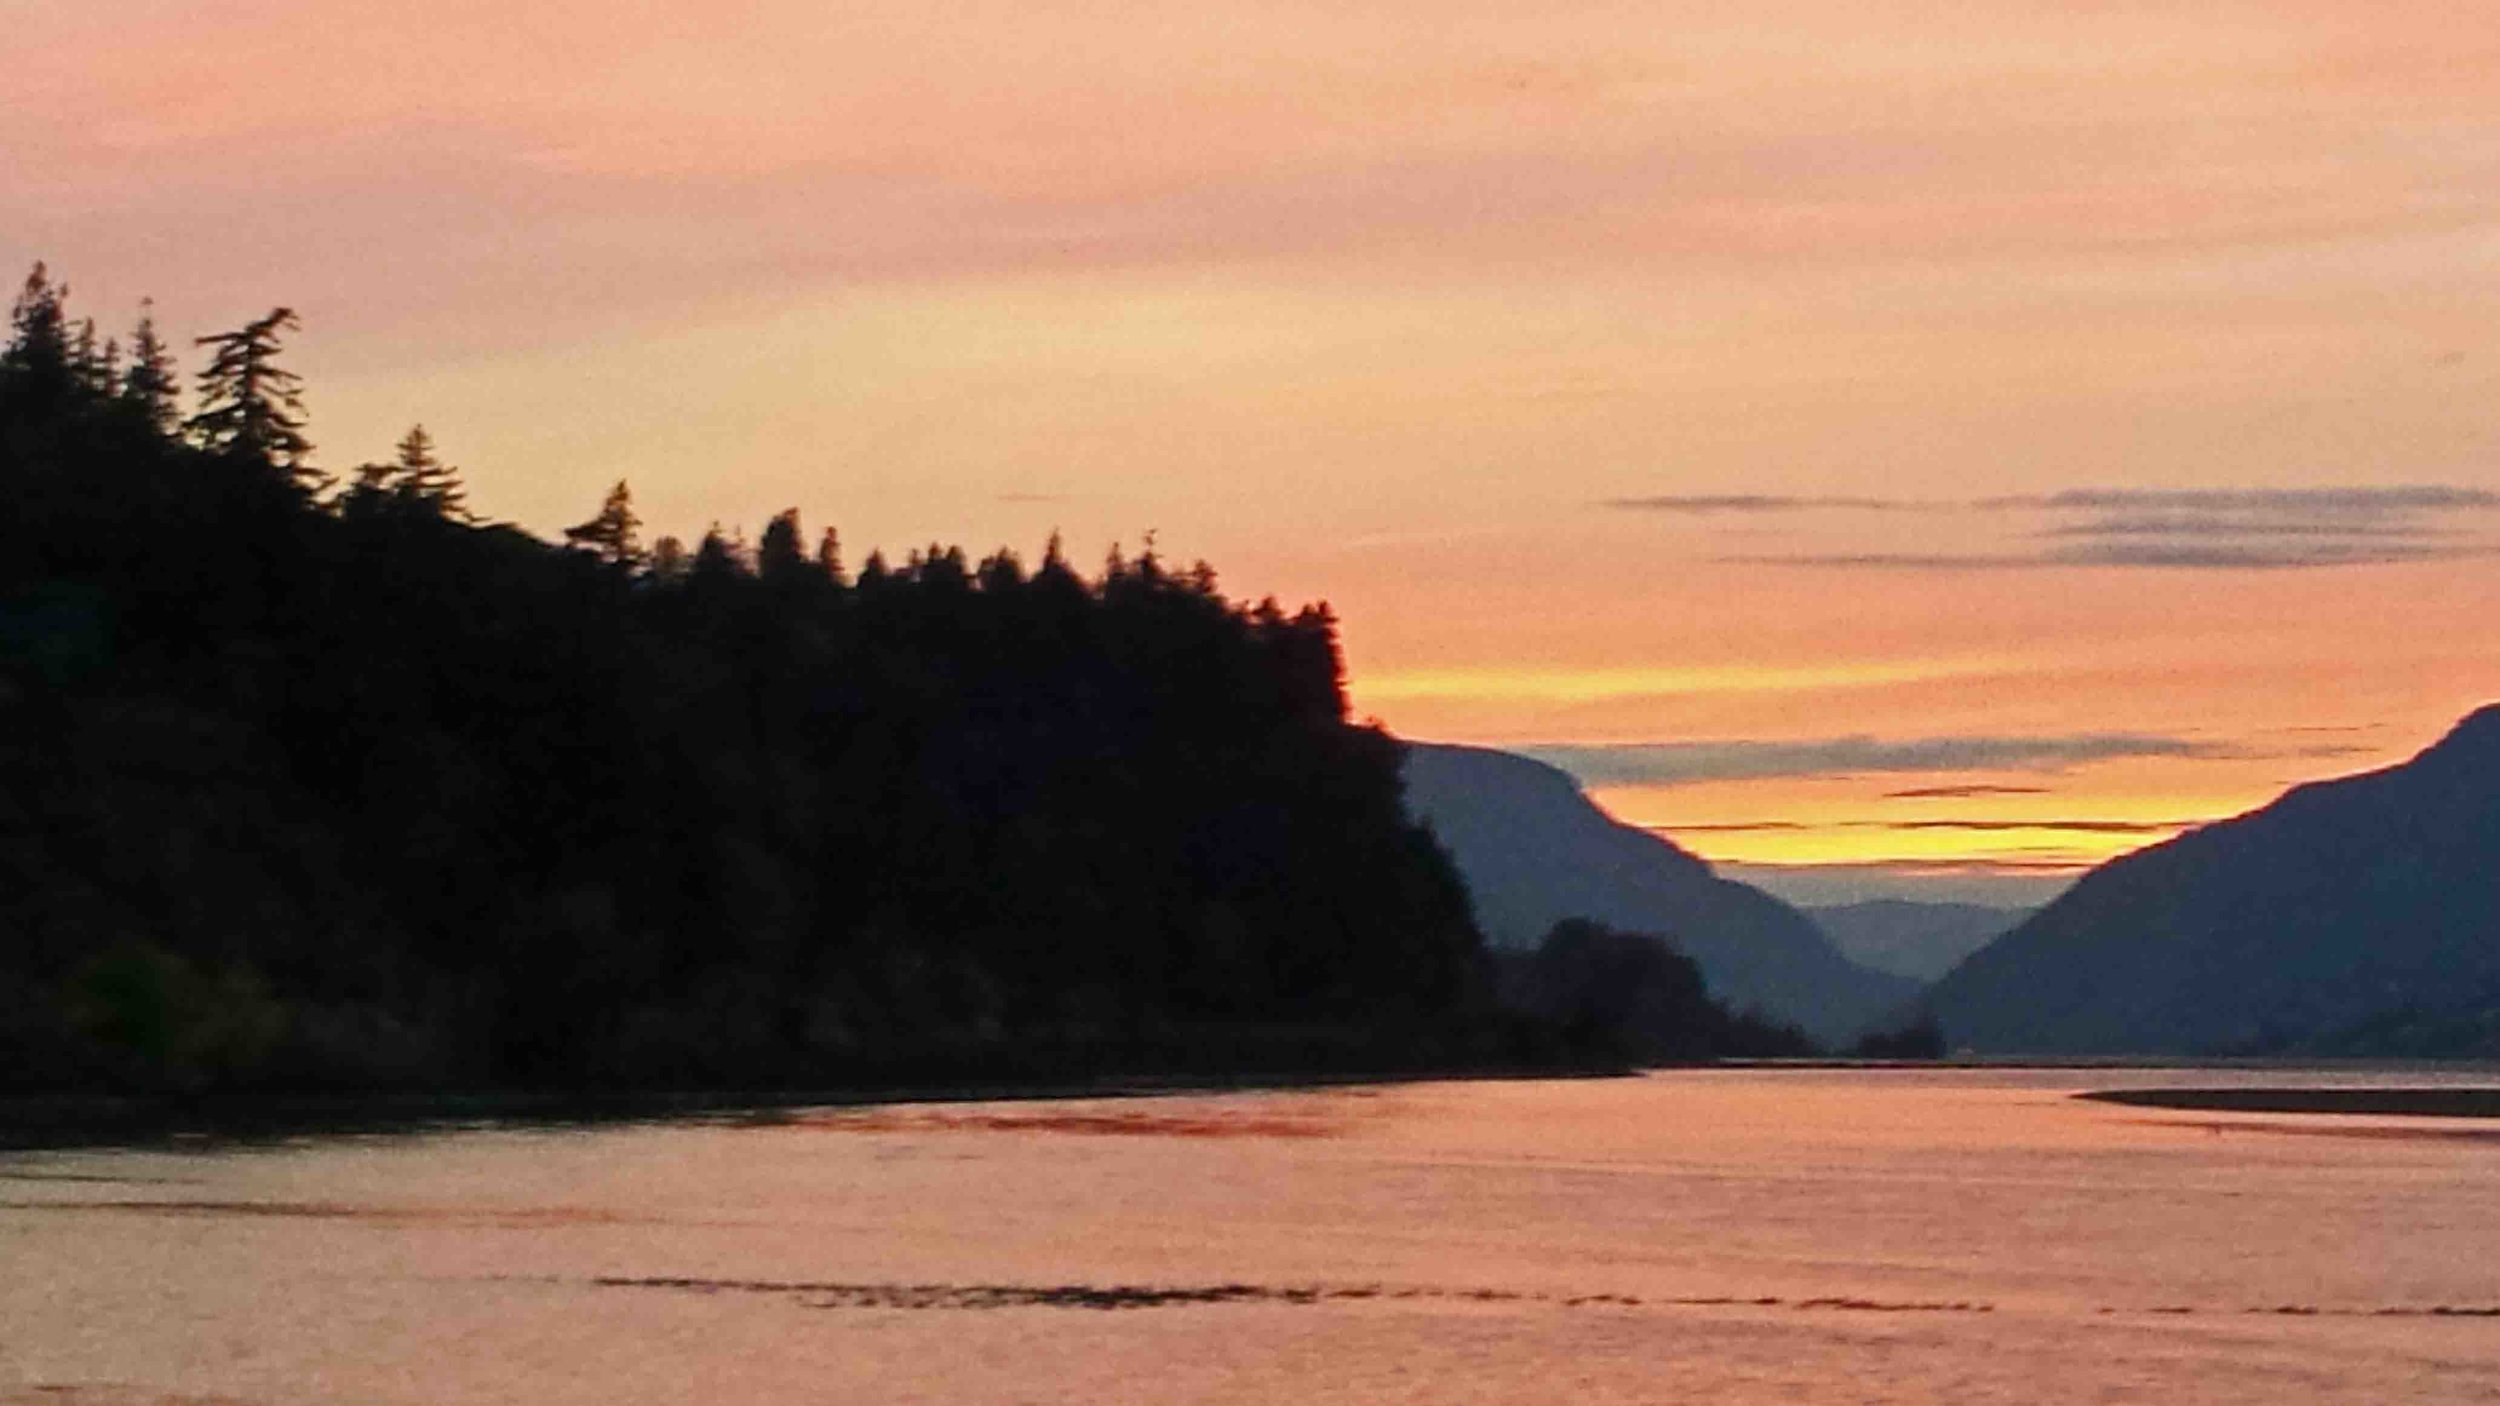 Salmon sunset - in more ways than one.   Photo: (c) Barb Ayers, DogDiary.org